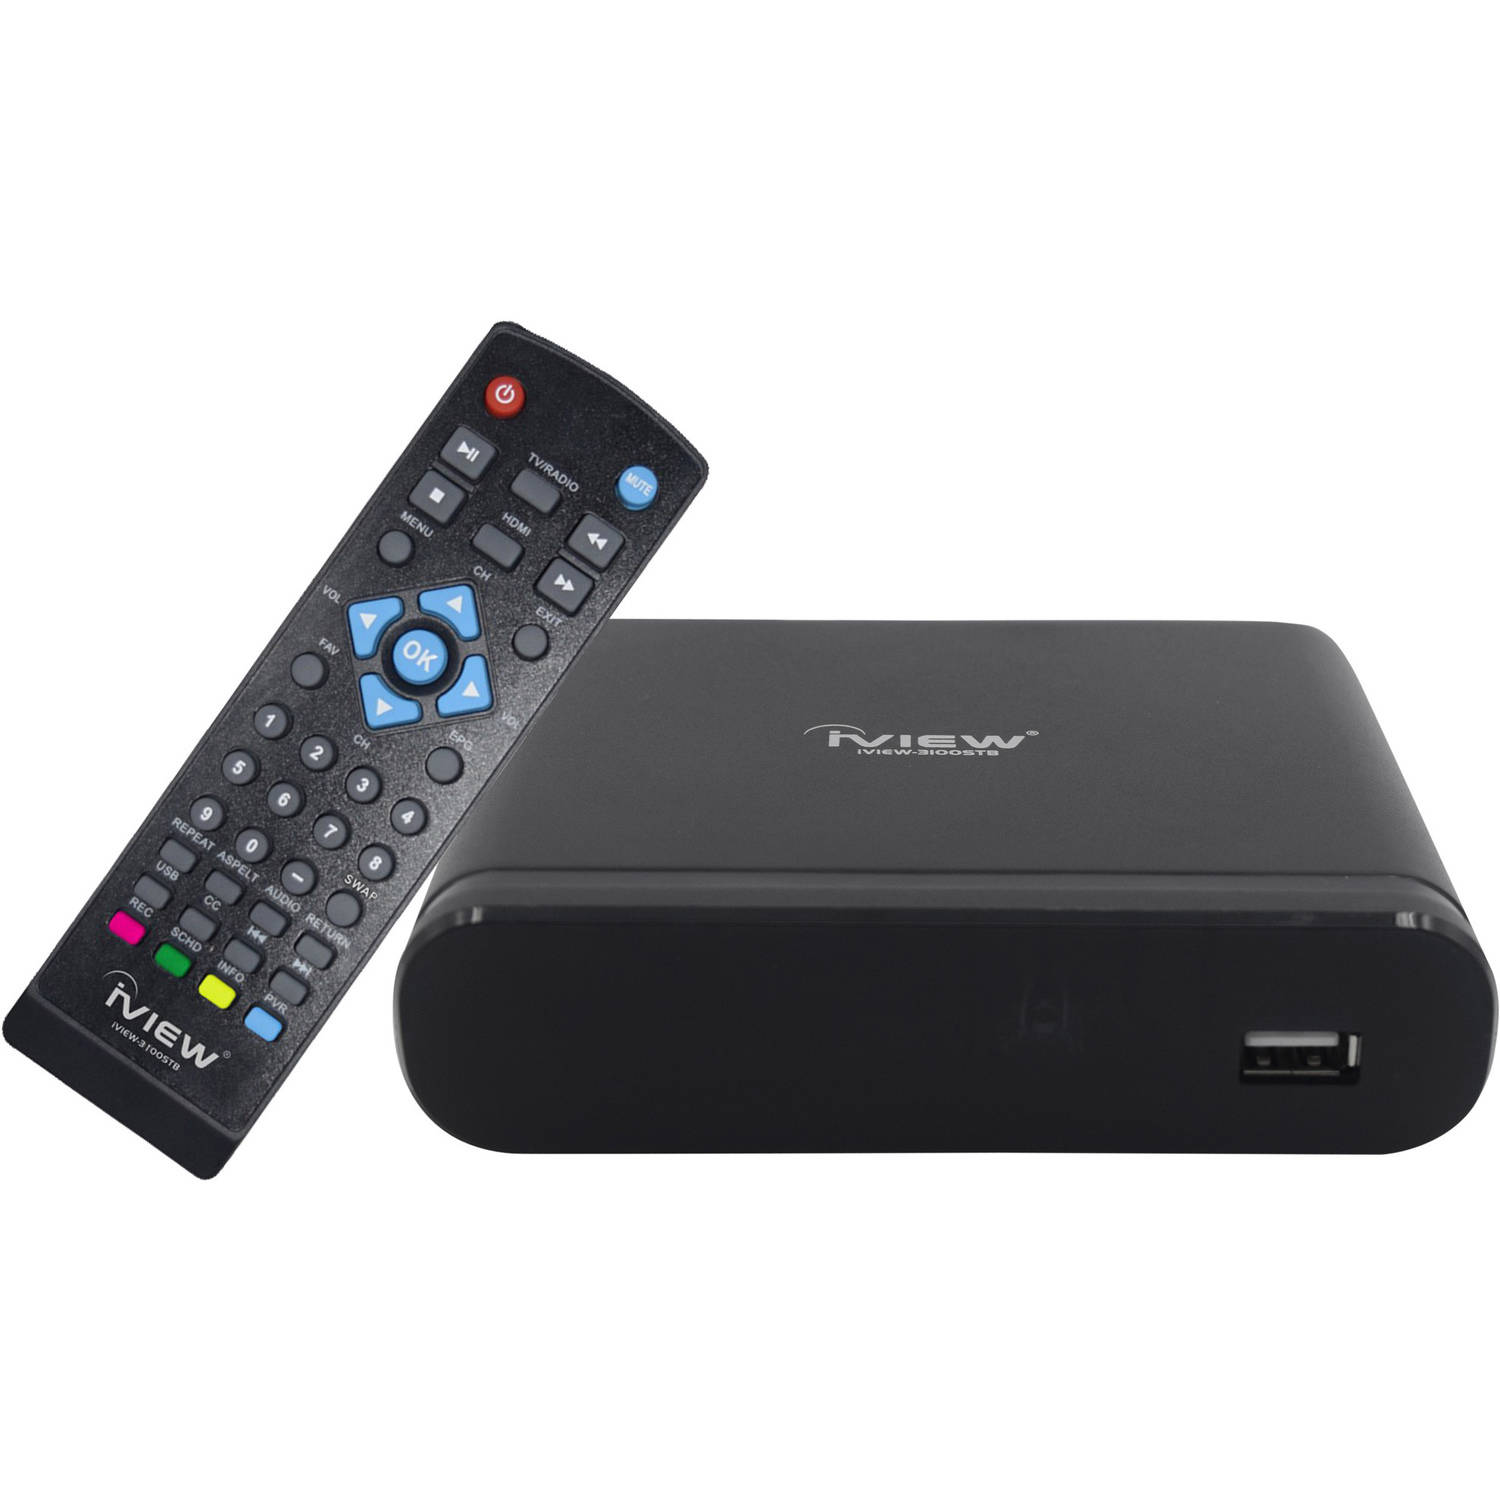 iVIEW 3100STB Digital Converter Box with Recording, Media Playback and Universal Remote